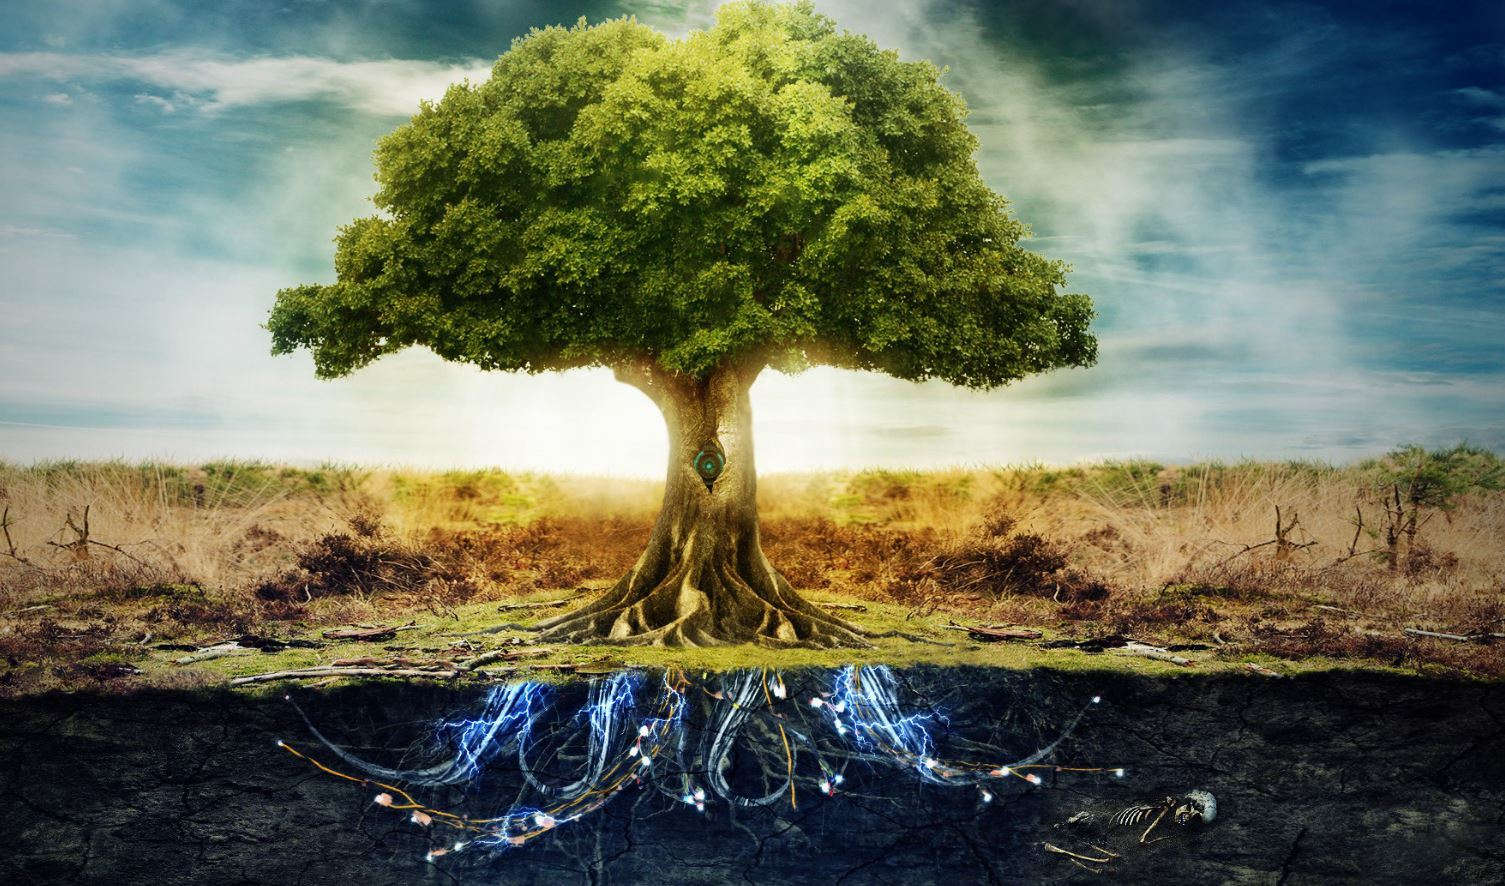 Revelation 22:1-2 - The River of Life and Tree of Life | Jesus: The